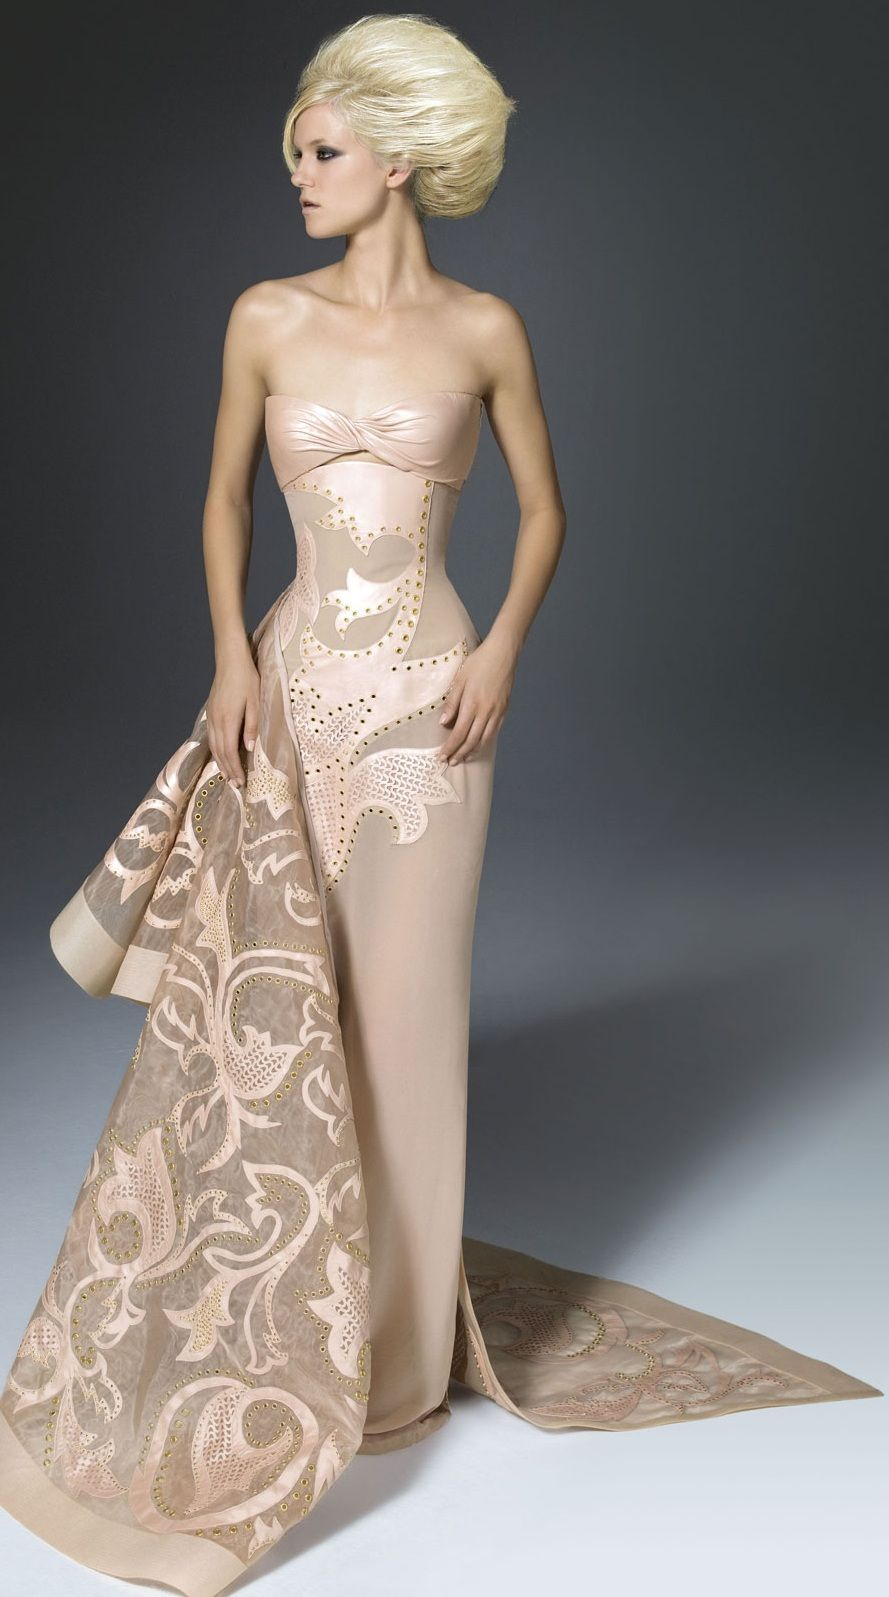 Fashion week Evening versace gowns for lady